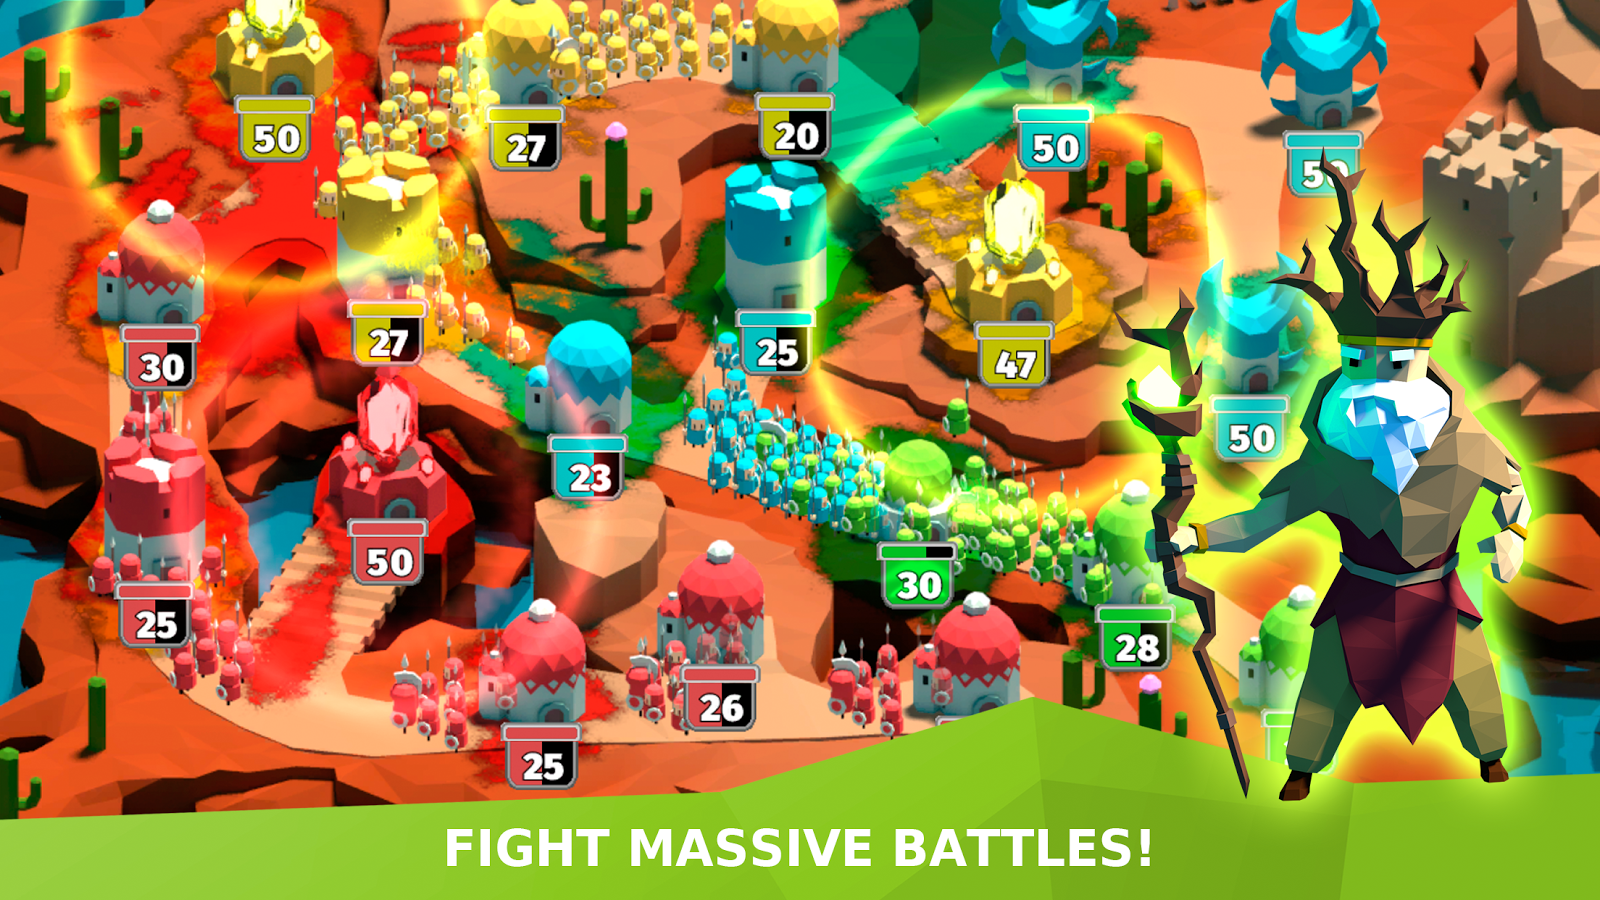 BattleTime Screenshot 11